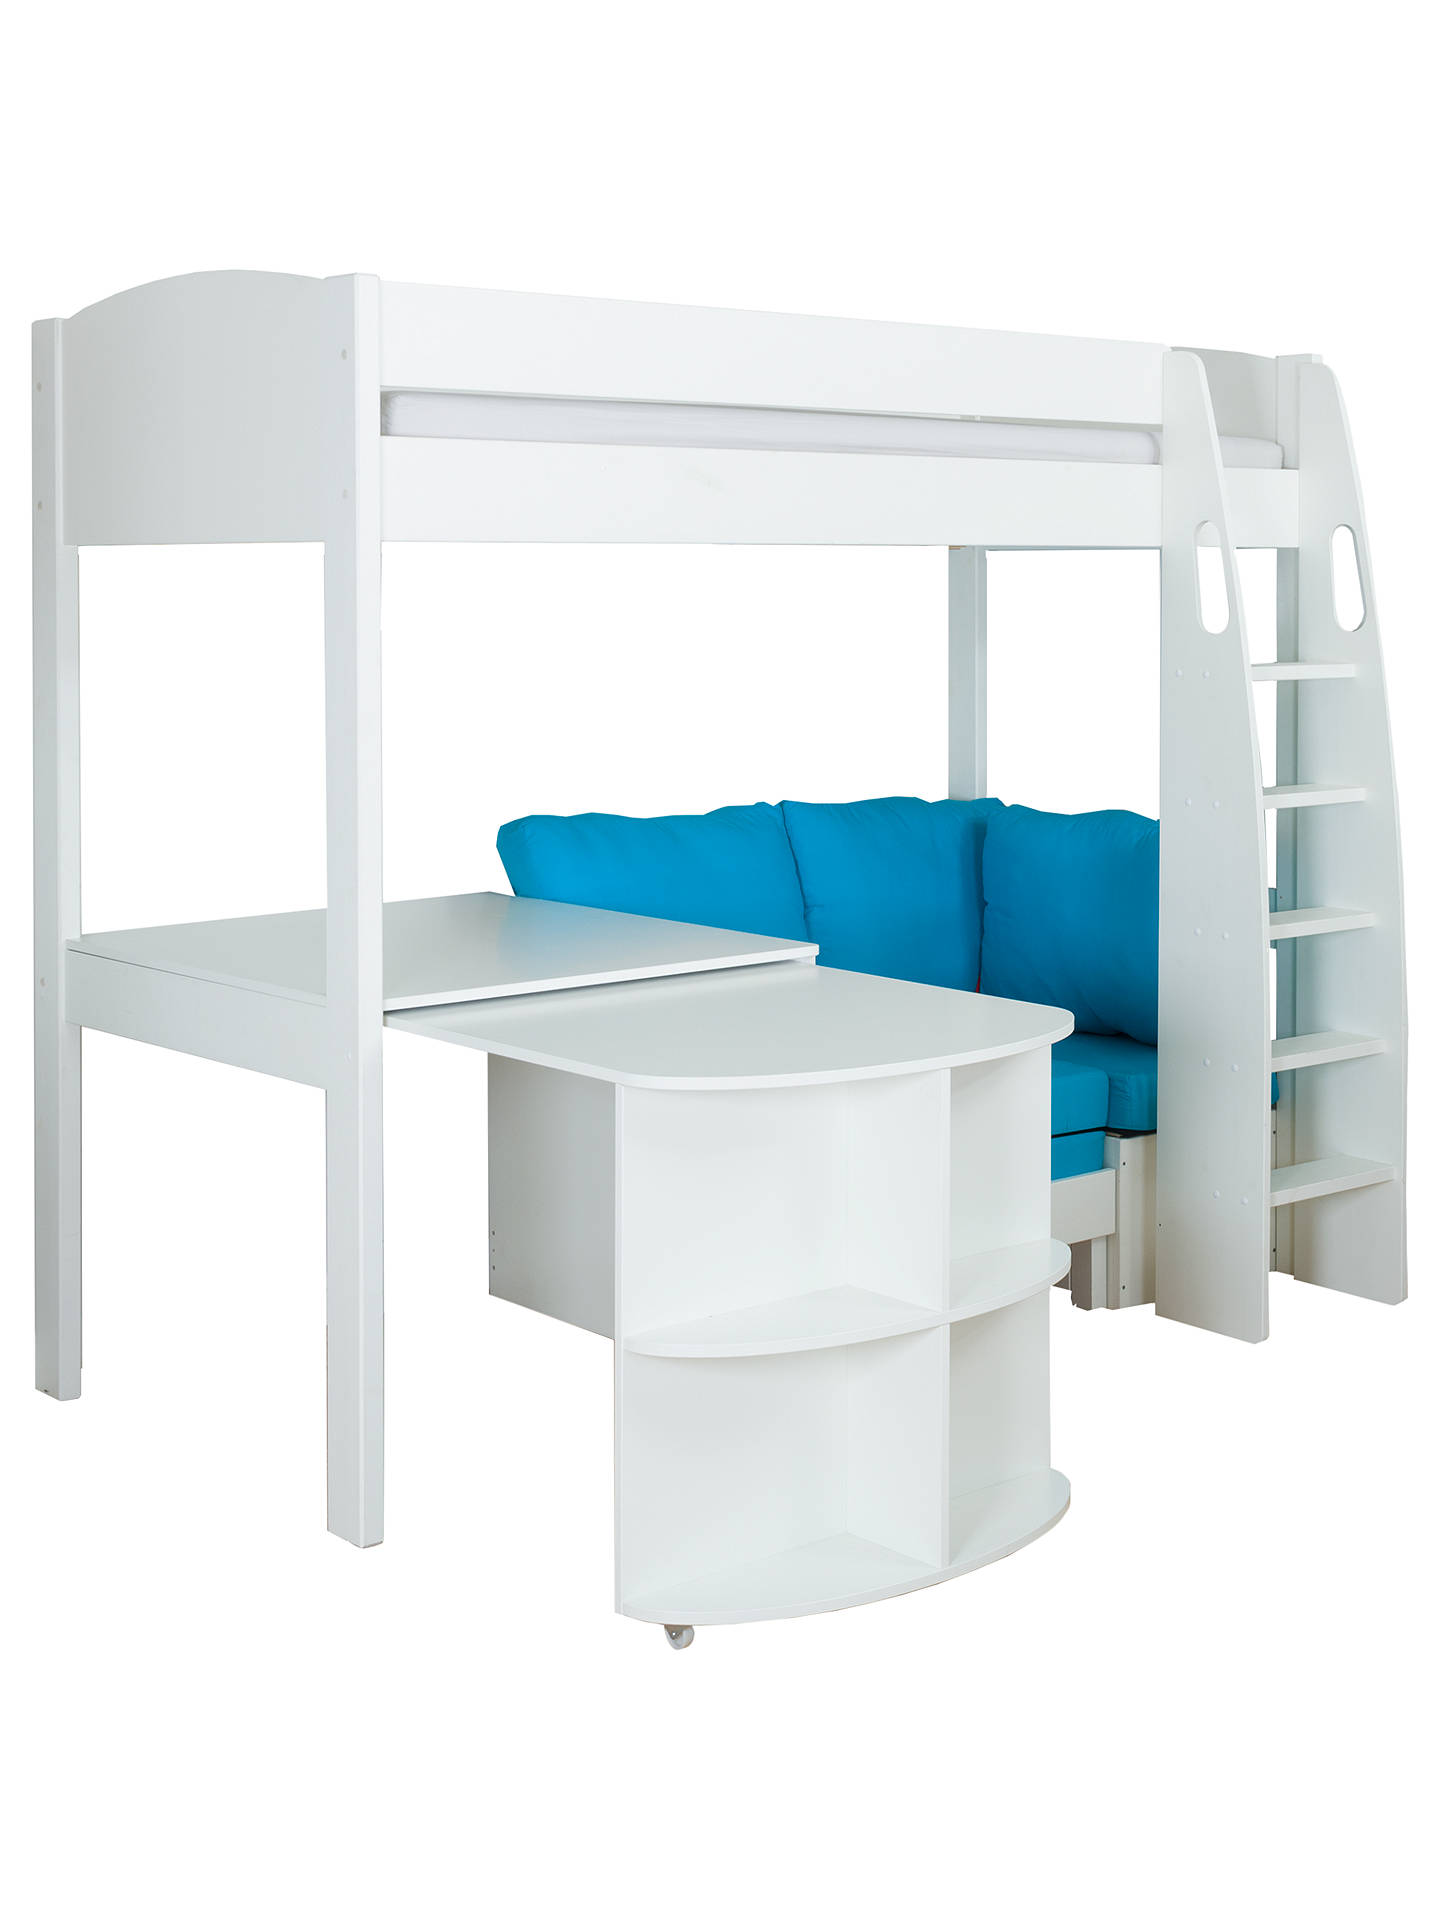 BuyStompa Uno S Plus High-Sleeper Bed with Pull-Out Desk and Chair Bed, White/Aqua Online at johnlewis.com